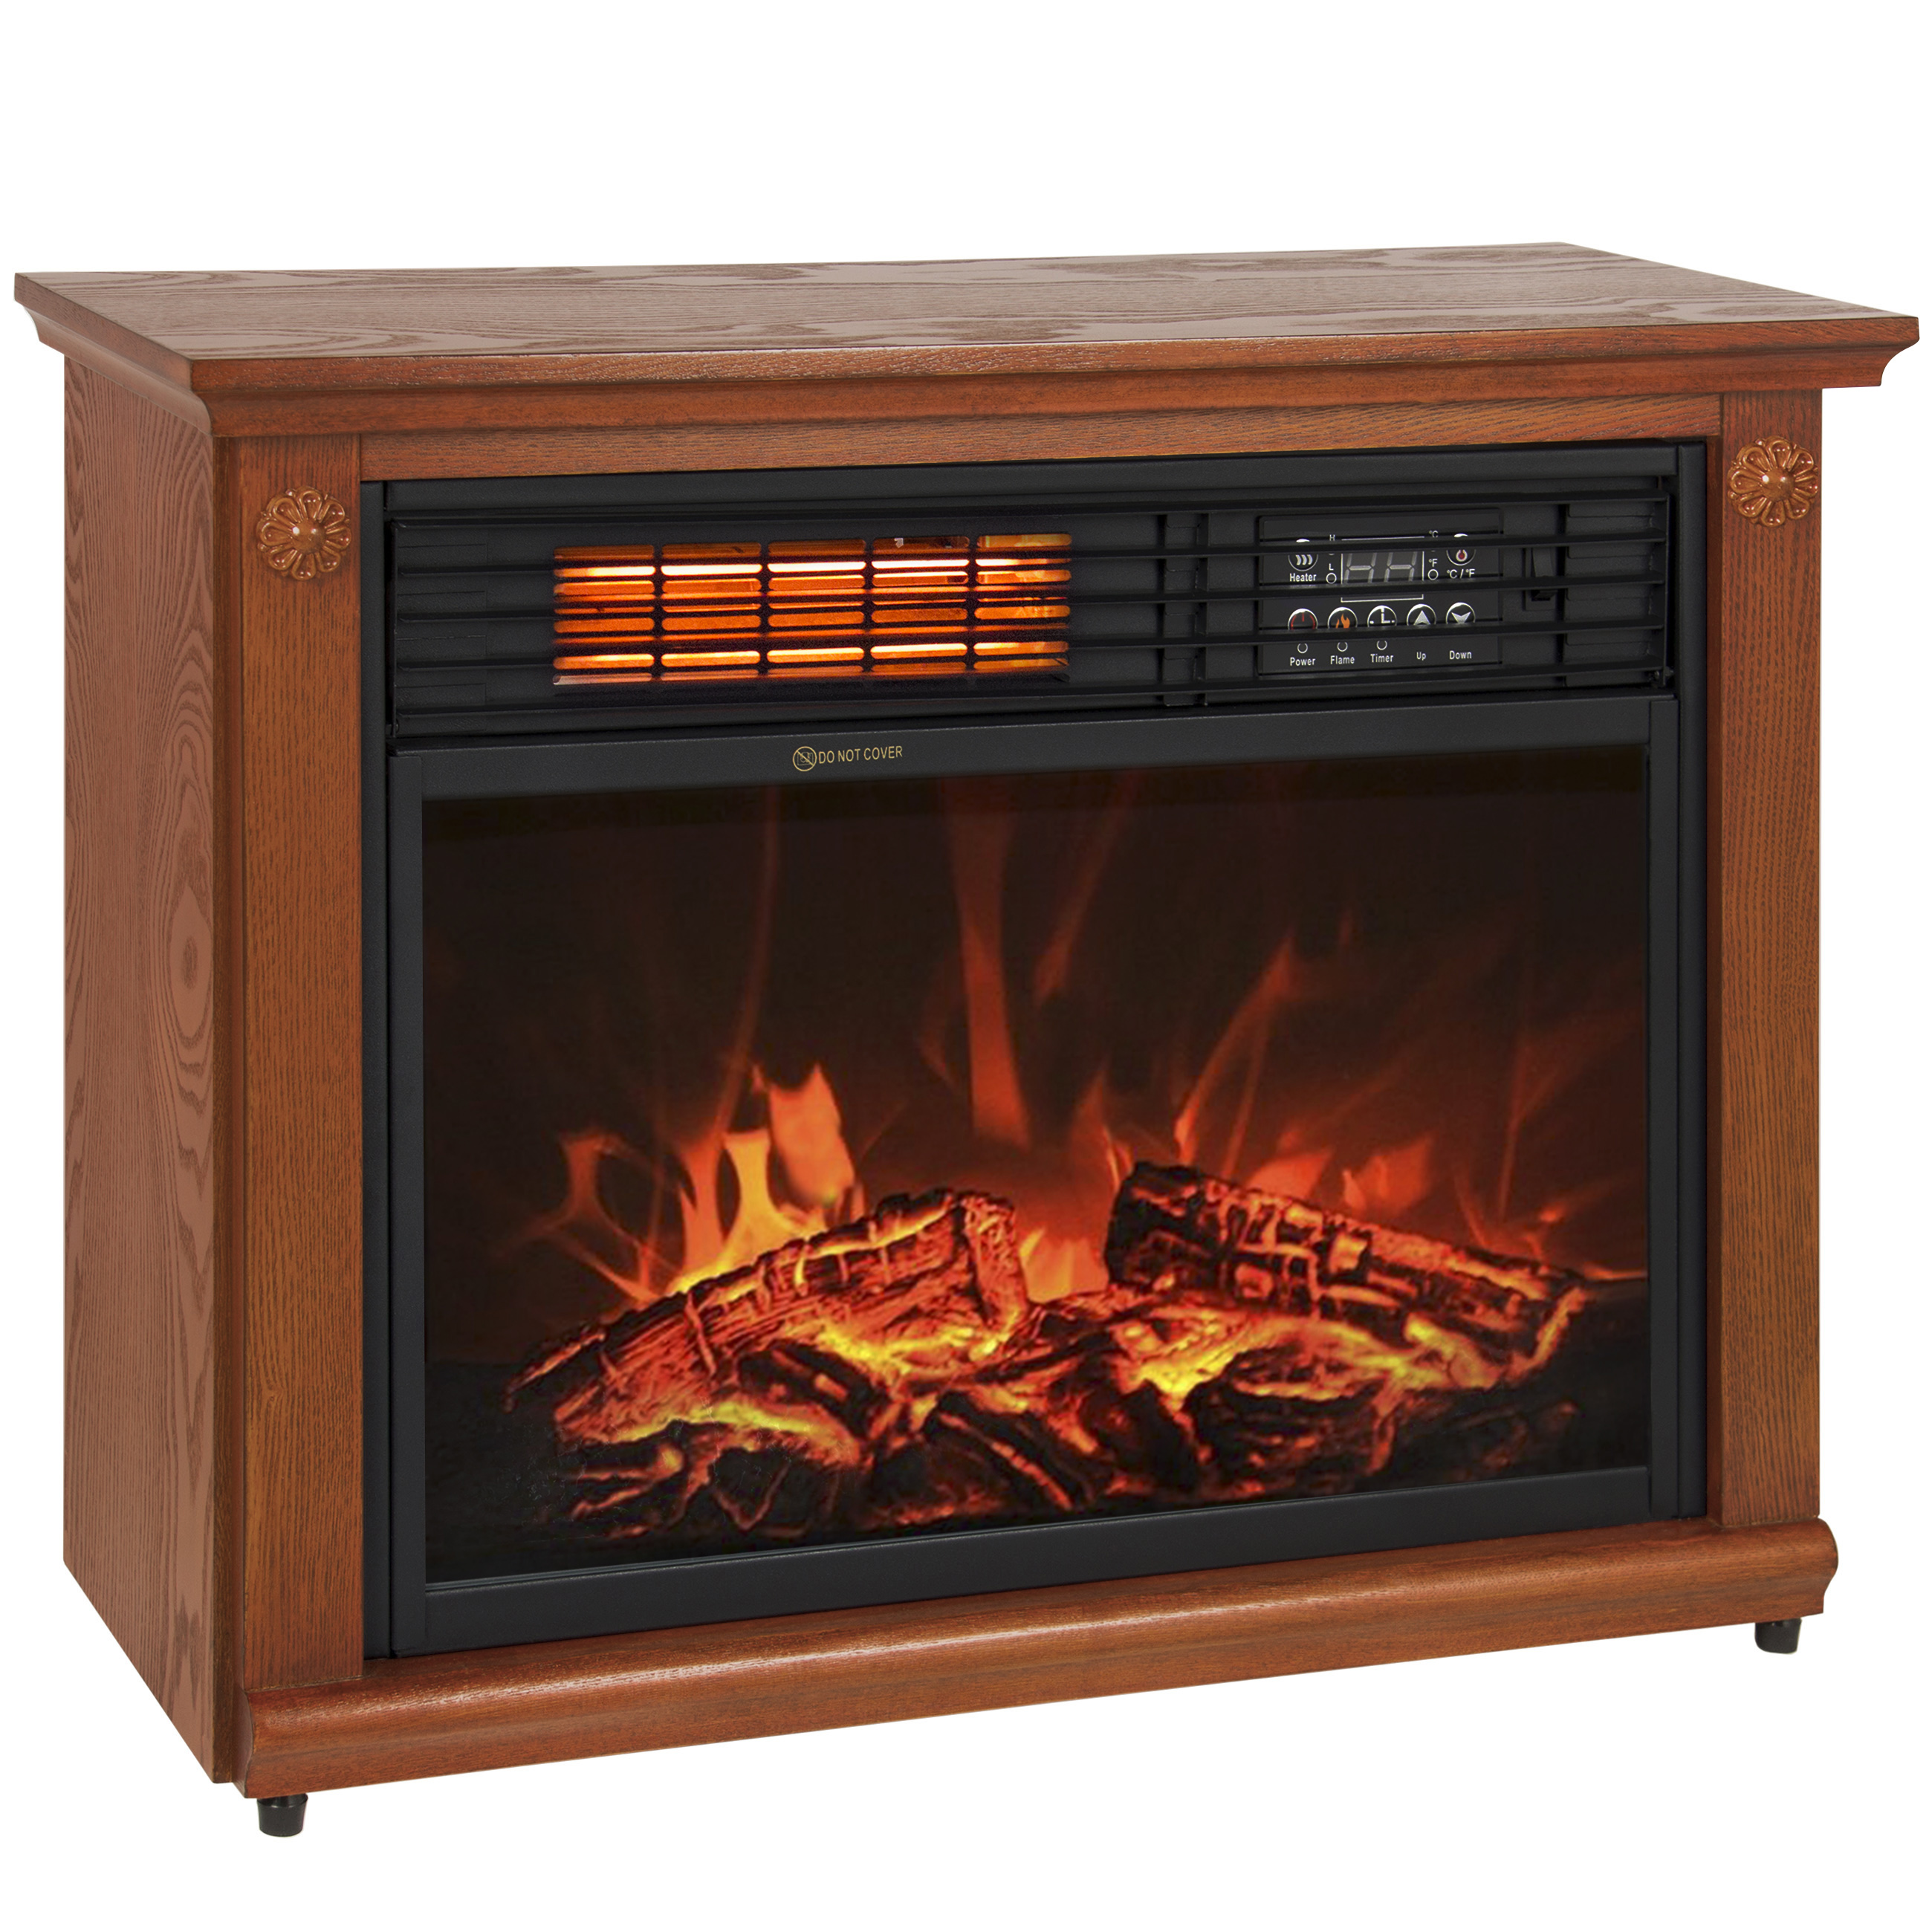 large room infrared quartz electric fireplace heater honey oak finish w remote walmart